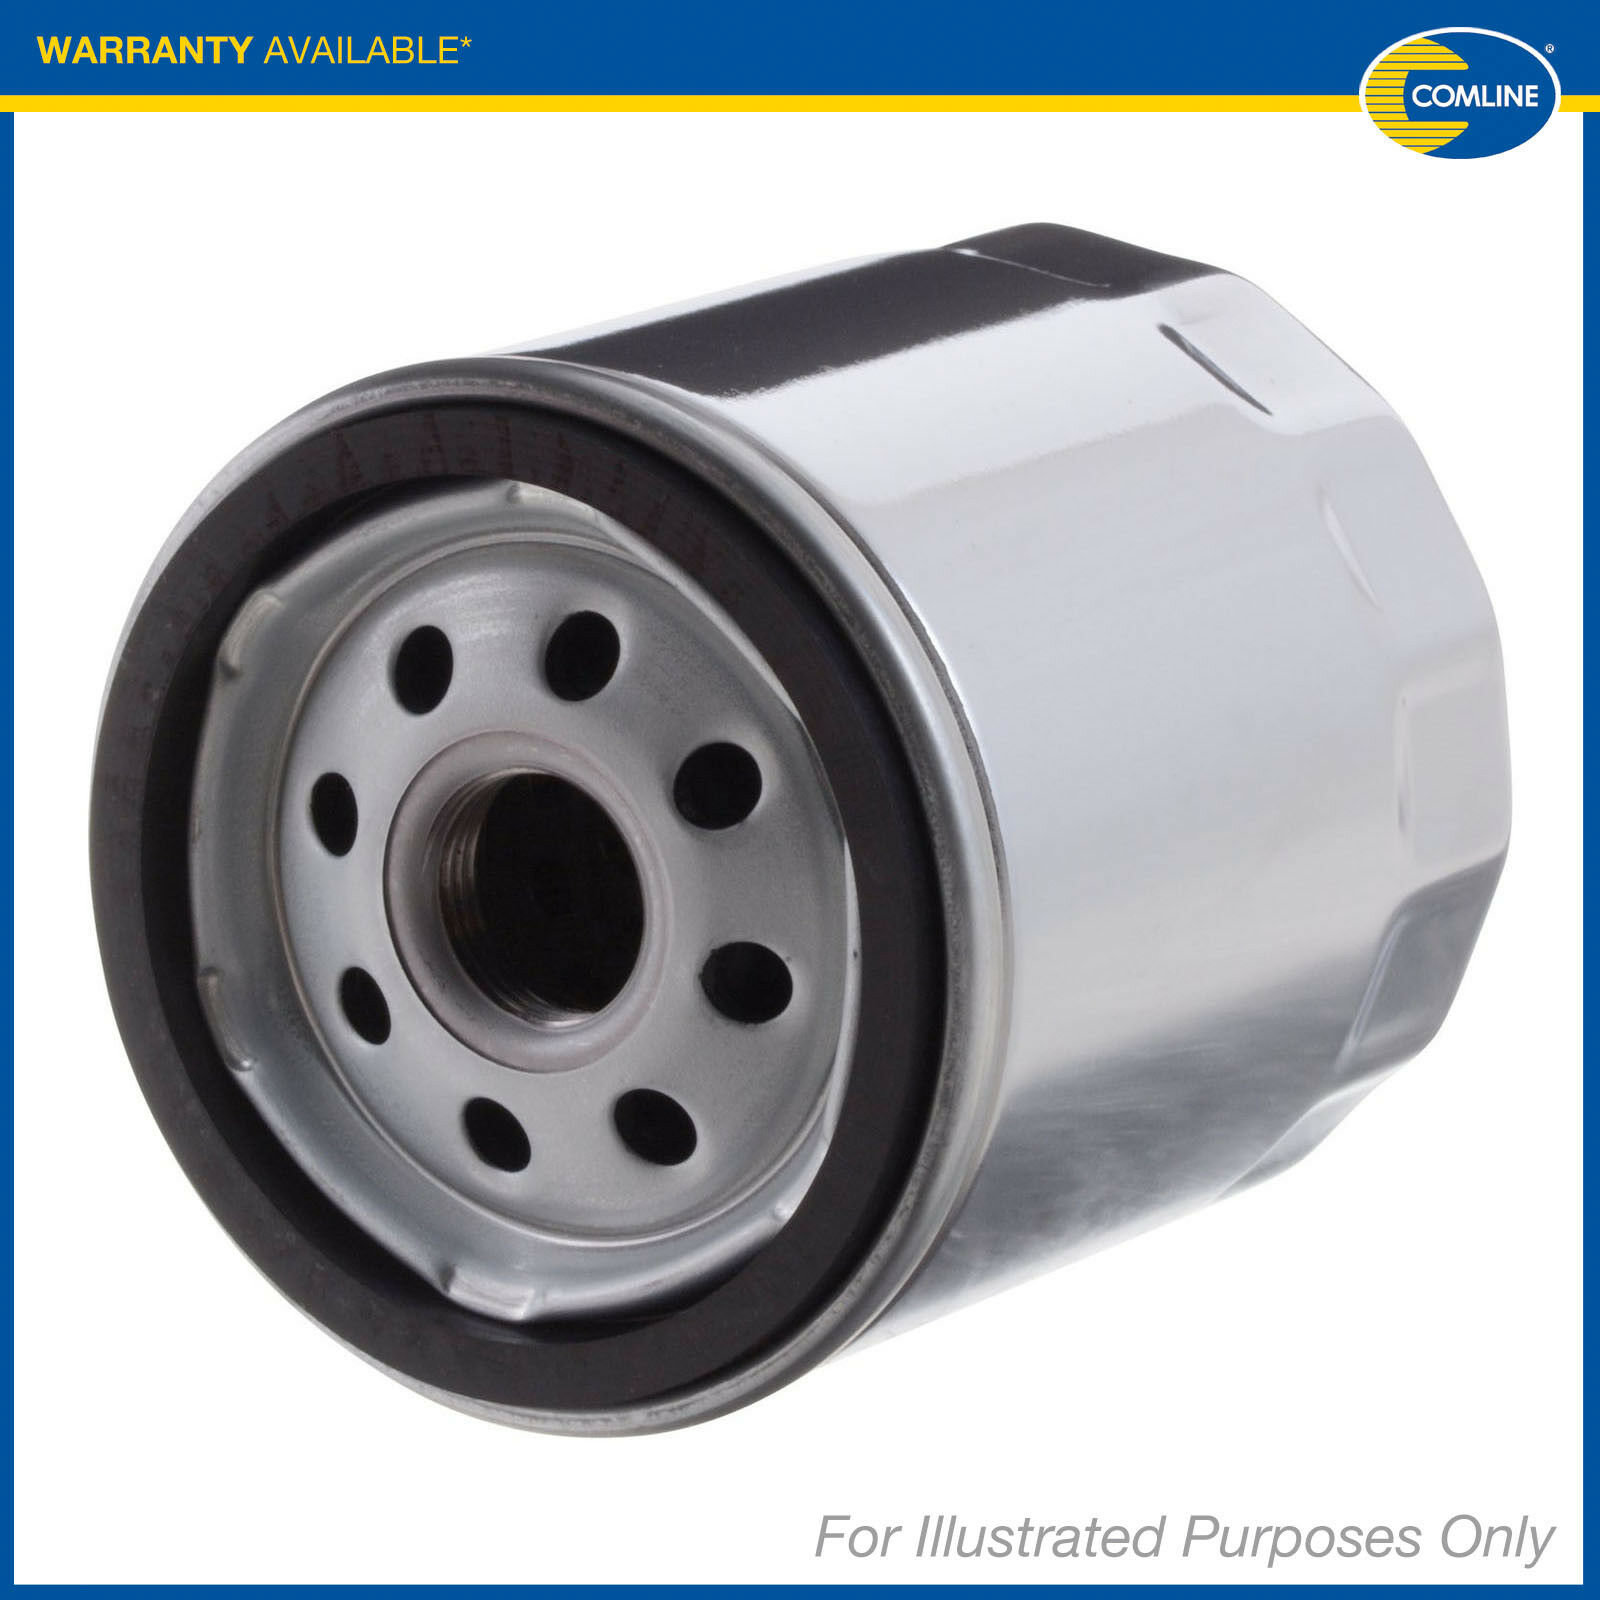 Volvo S60 Mk1 24 D5 Genuine Comline Screw On Fuel Filter 1236 960 1997 Location 1 Of 1free Shipping